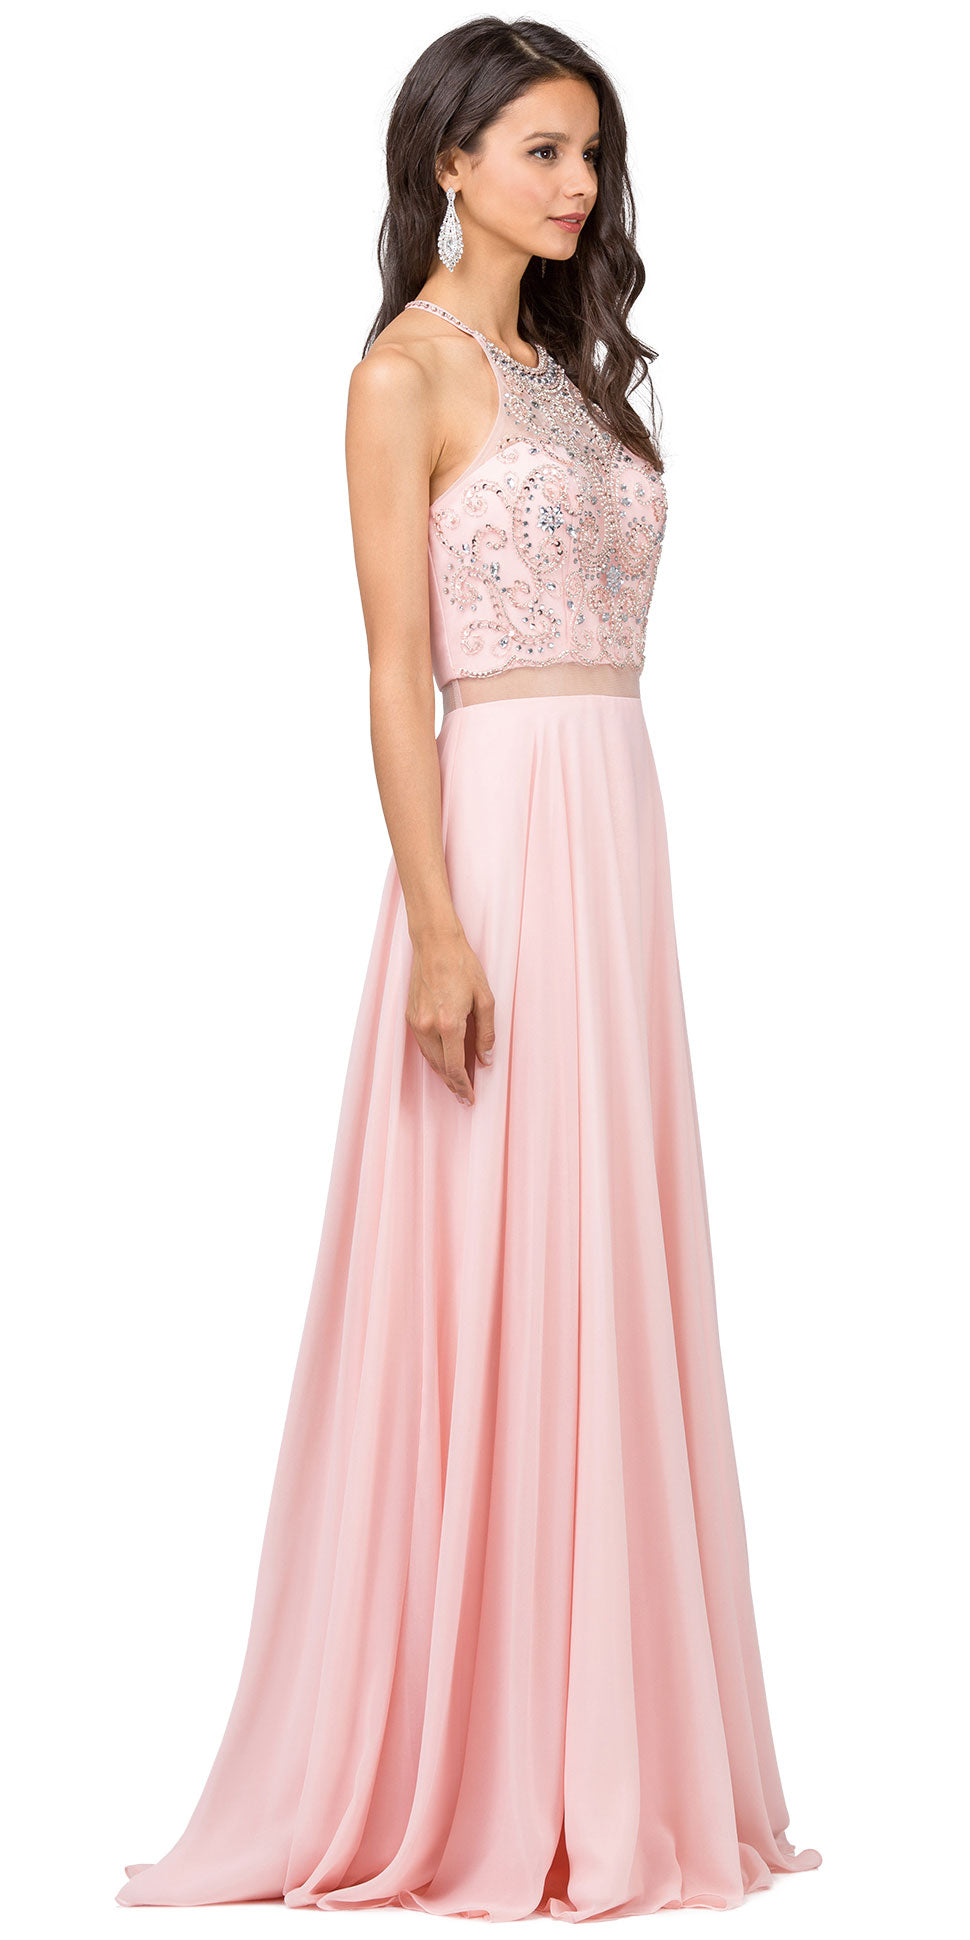 Image of A-line Rhinestones Bodice Sheer Waist Long Prom Dress in Blush